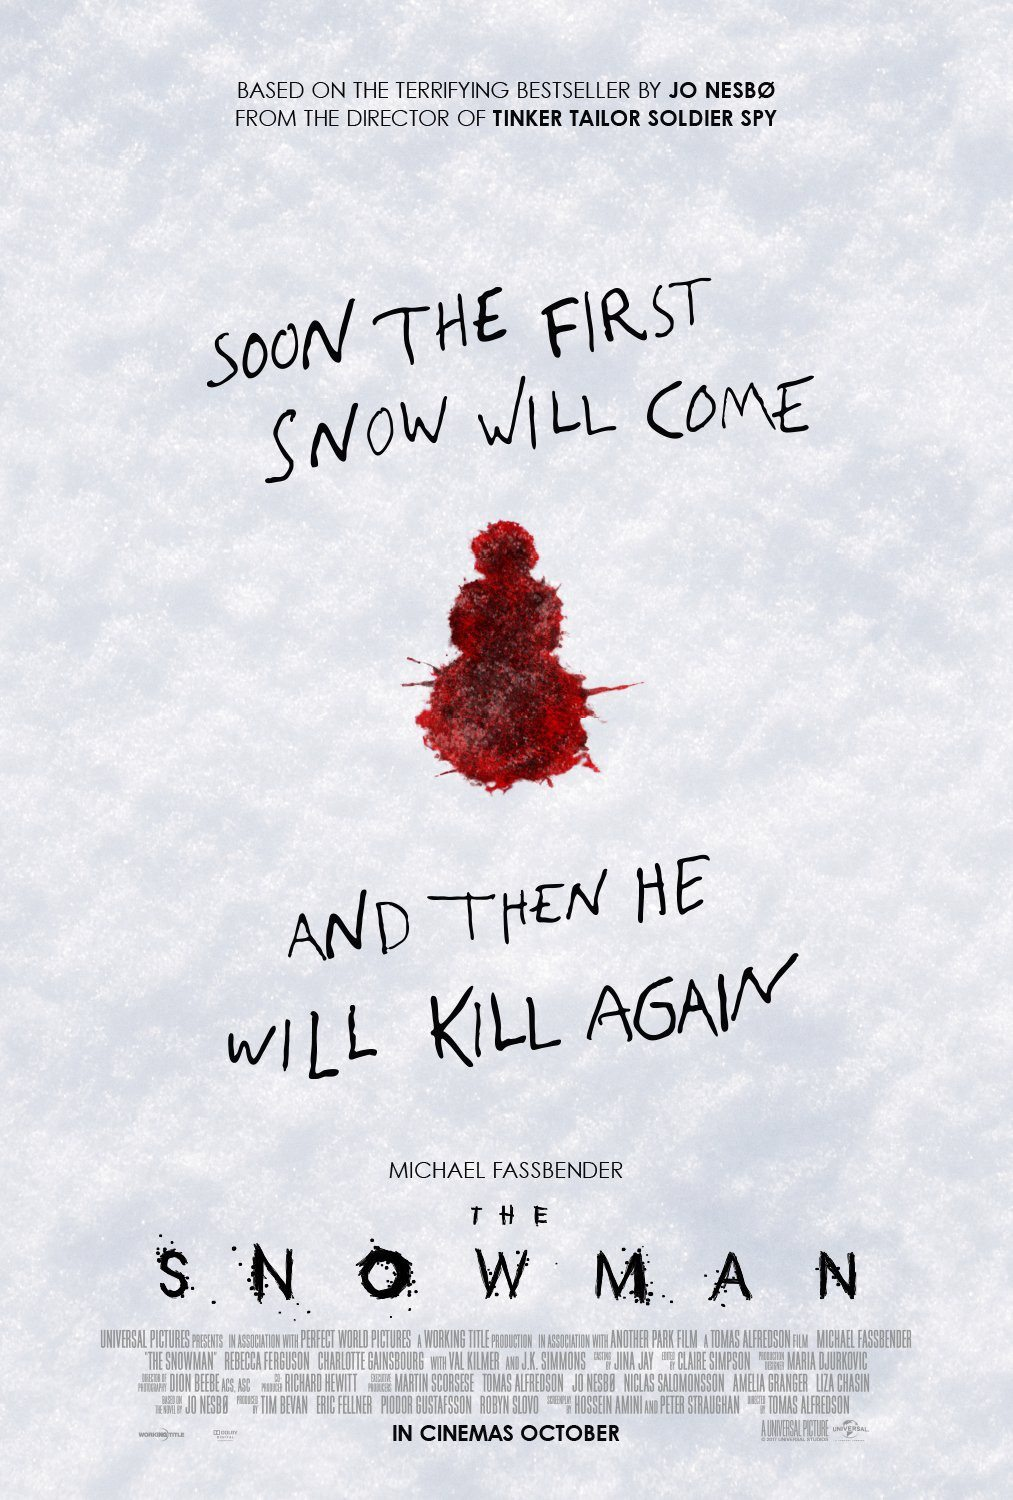 snowman 4 - New Posters for The Snowman Have Some Red on Them